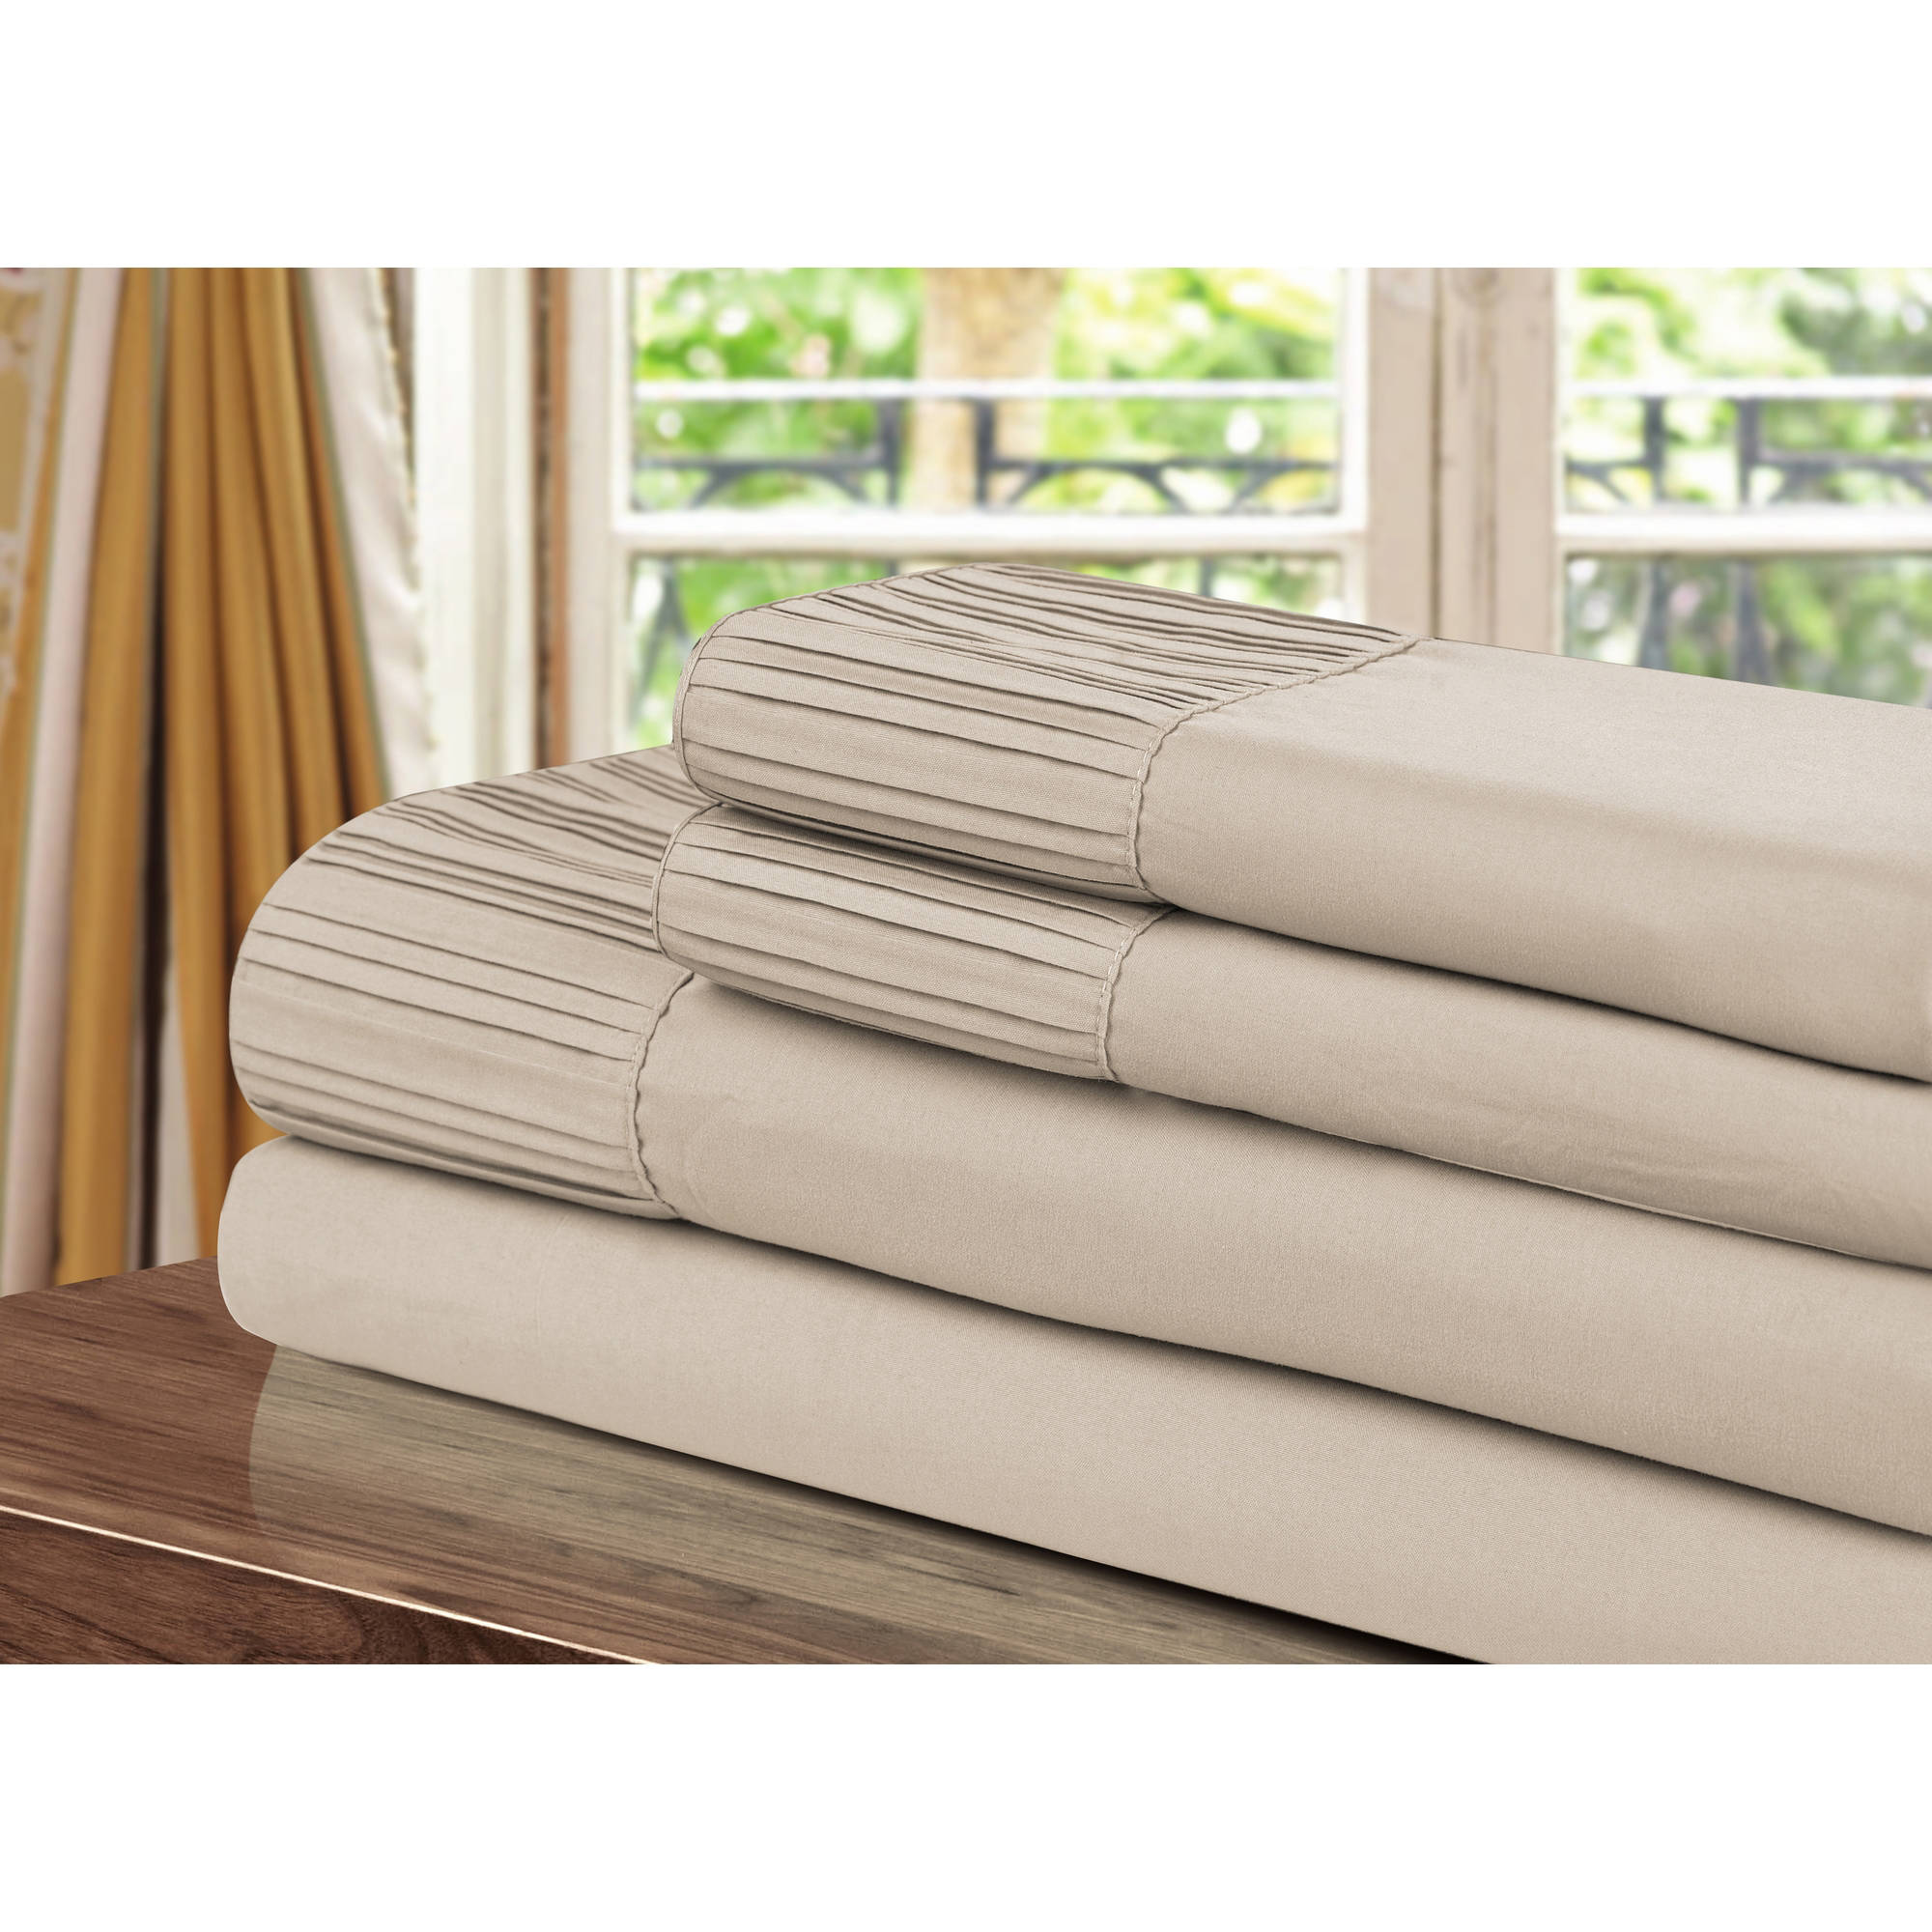 Swifty Pleated Microfiber Sheet